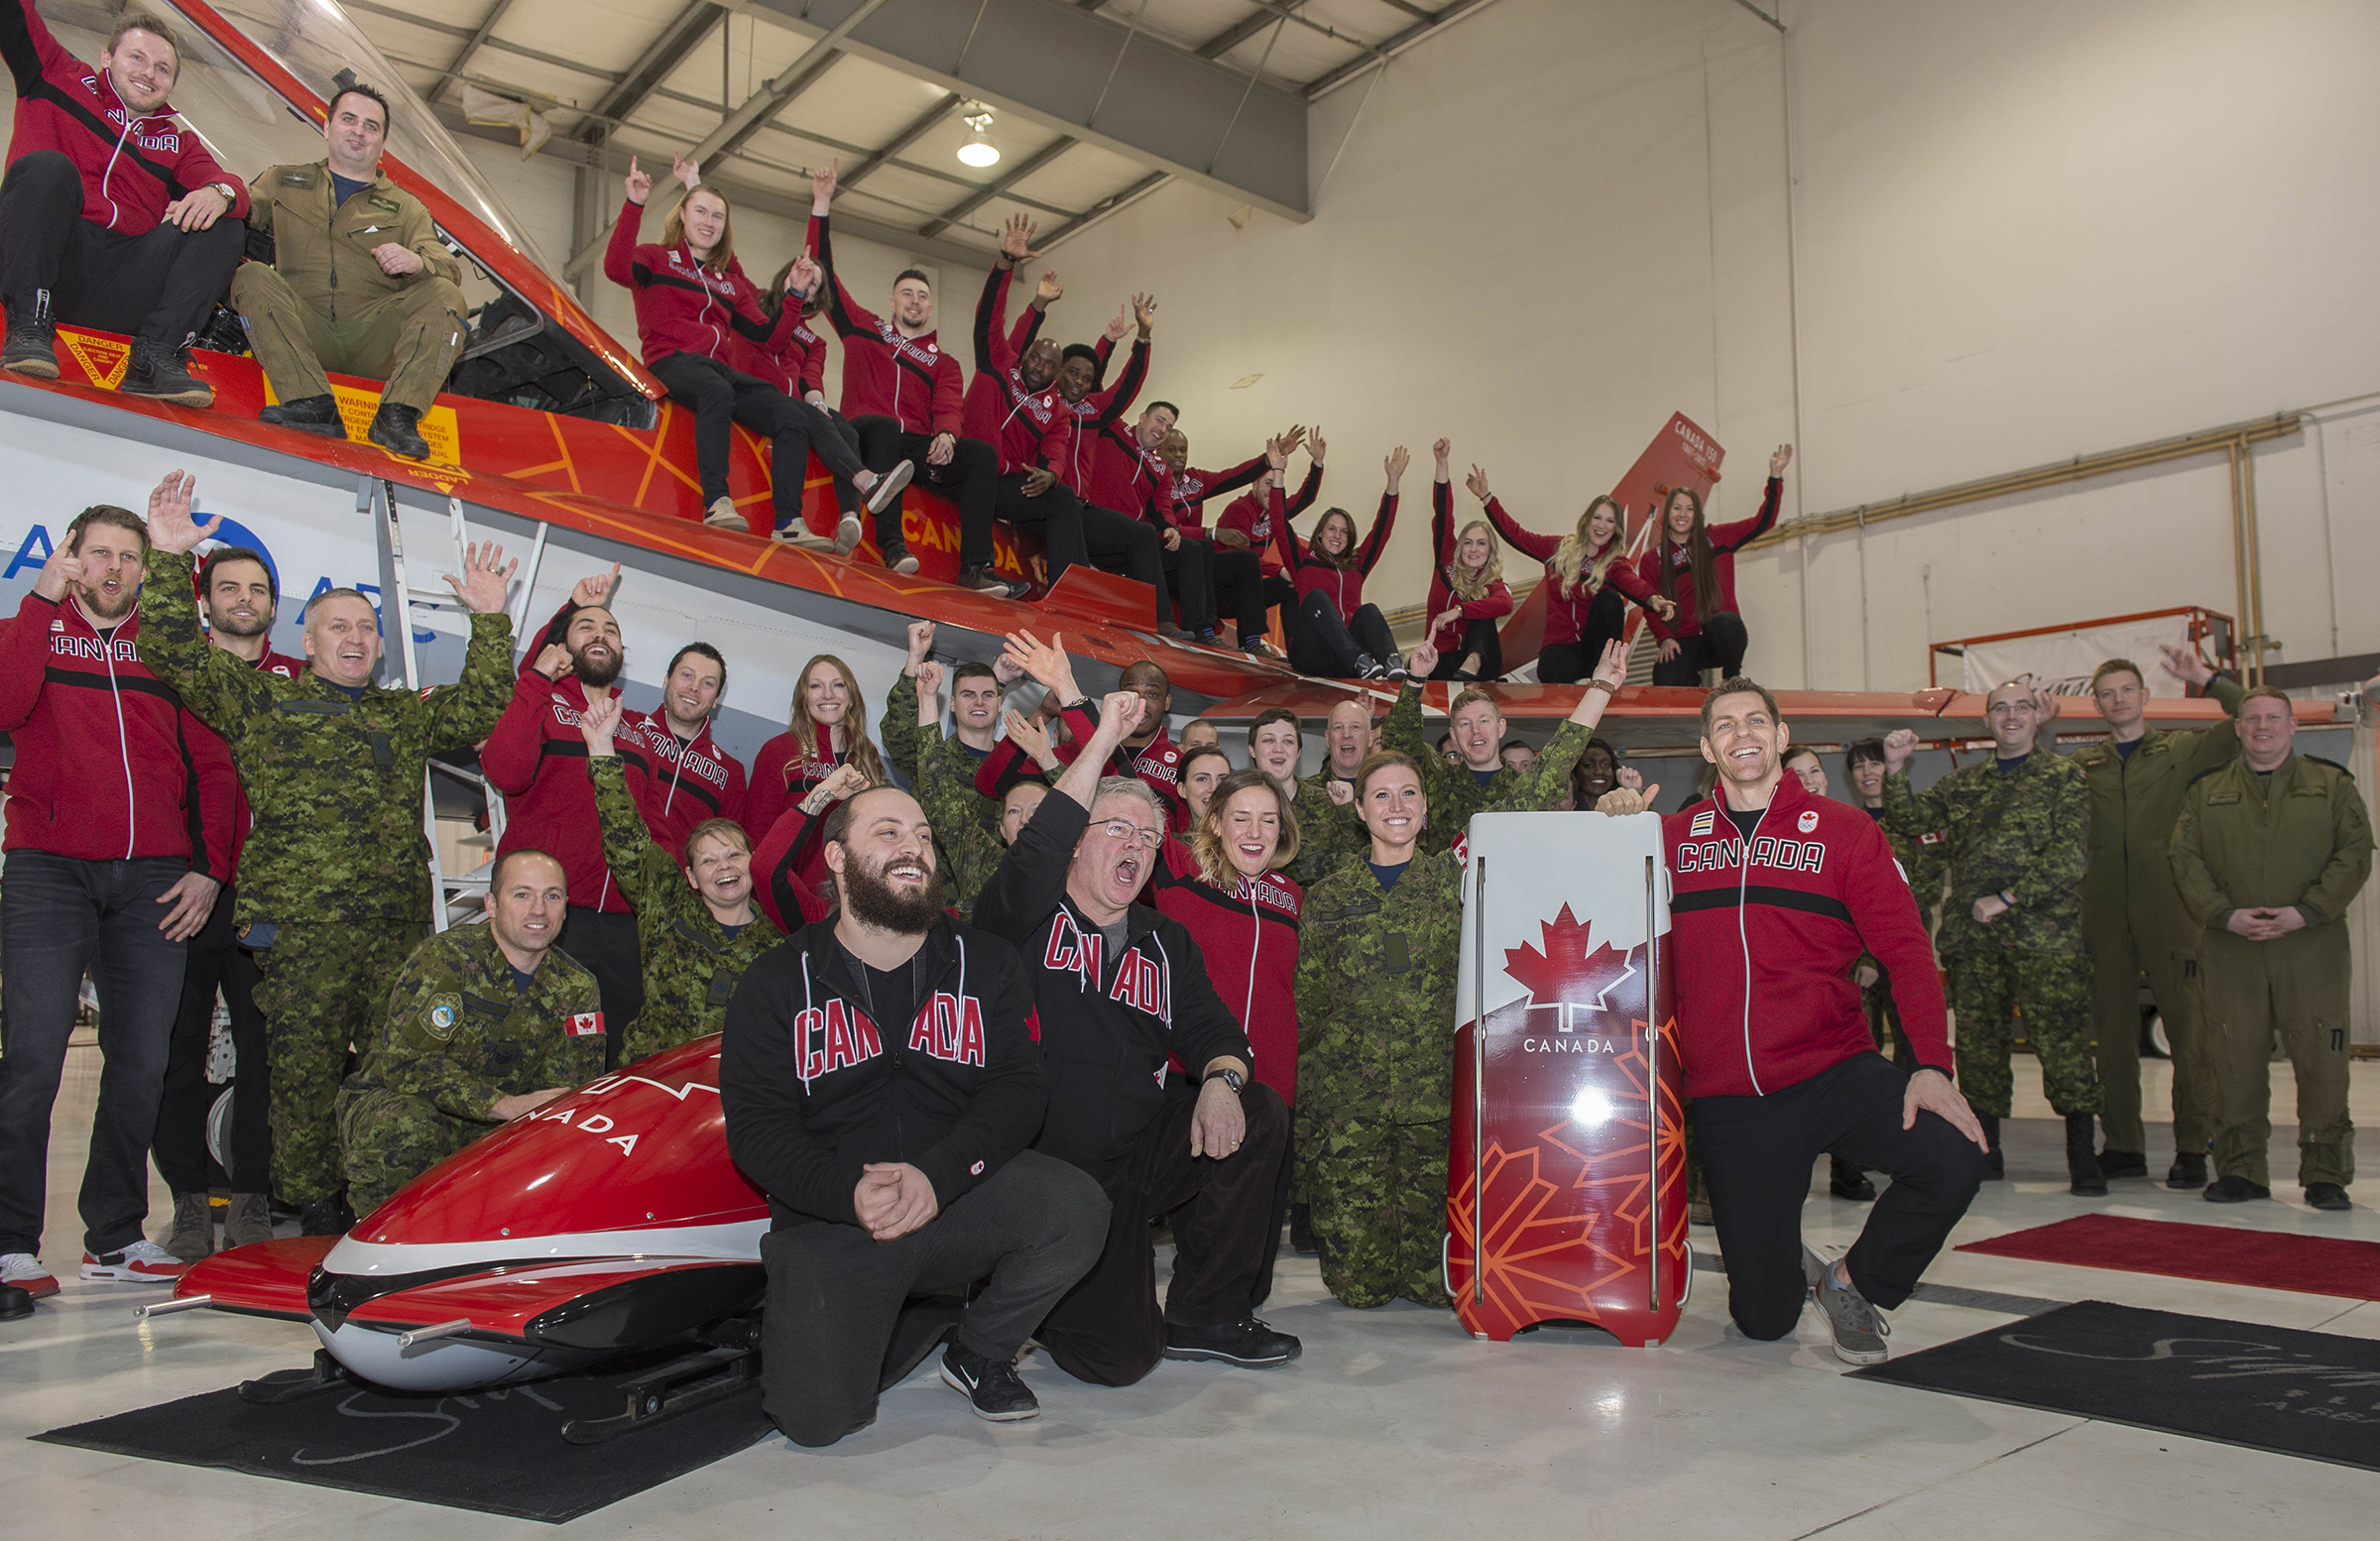 Royal Canadian Air Force personnel, 2018 Olympic Winter Games nominated athletes, the designer of the Olympic bobsleigh and skeleton sleds Josh Dornan (front left), and the designer of the Canada 150 CF-18 Demonstration Hornet Jim Belliveau (front, second from the left) pose for a group photo with the Demonstration Hornet and the newly-revealed bobsleigh and skeleton sleds inspired by the Demo Hornet. The reveal took place as part of a ceremony at the Signature Flight Support, Calgary, Alberta on January 24, 2018, during which Bobsleigh Canada Skeleton announced the nominated athletes and coaches to Canada's Olympic bobsleigh and skeleton teams for the 2018 Olympic Winter Games in PyeongChang, South Korea. PHOTO: Ordinary Seaman Justin Spinello, CK03-2018-0012-006